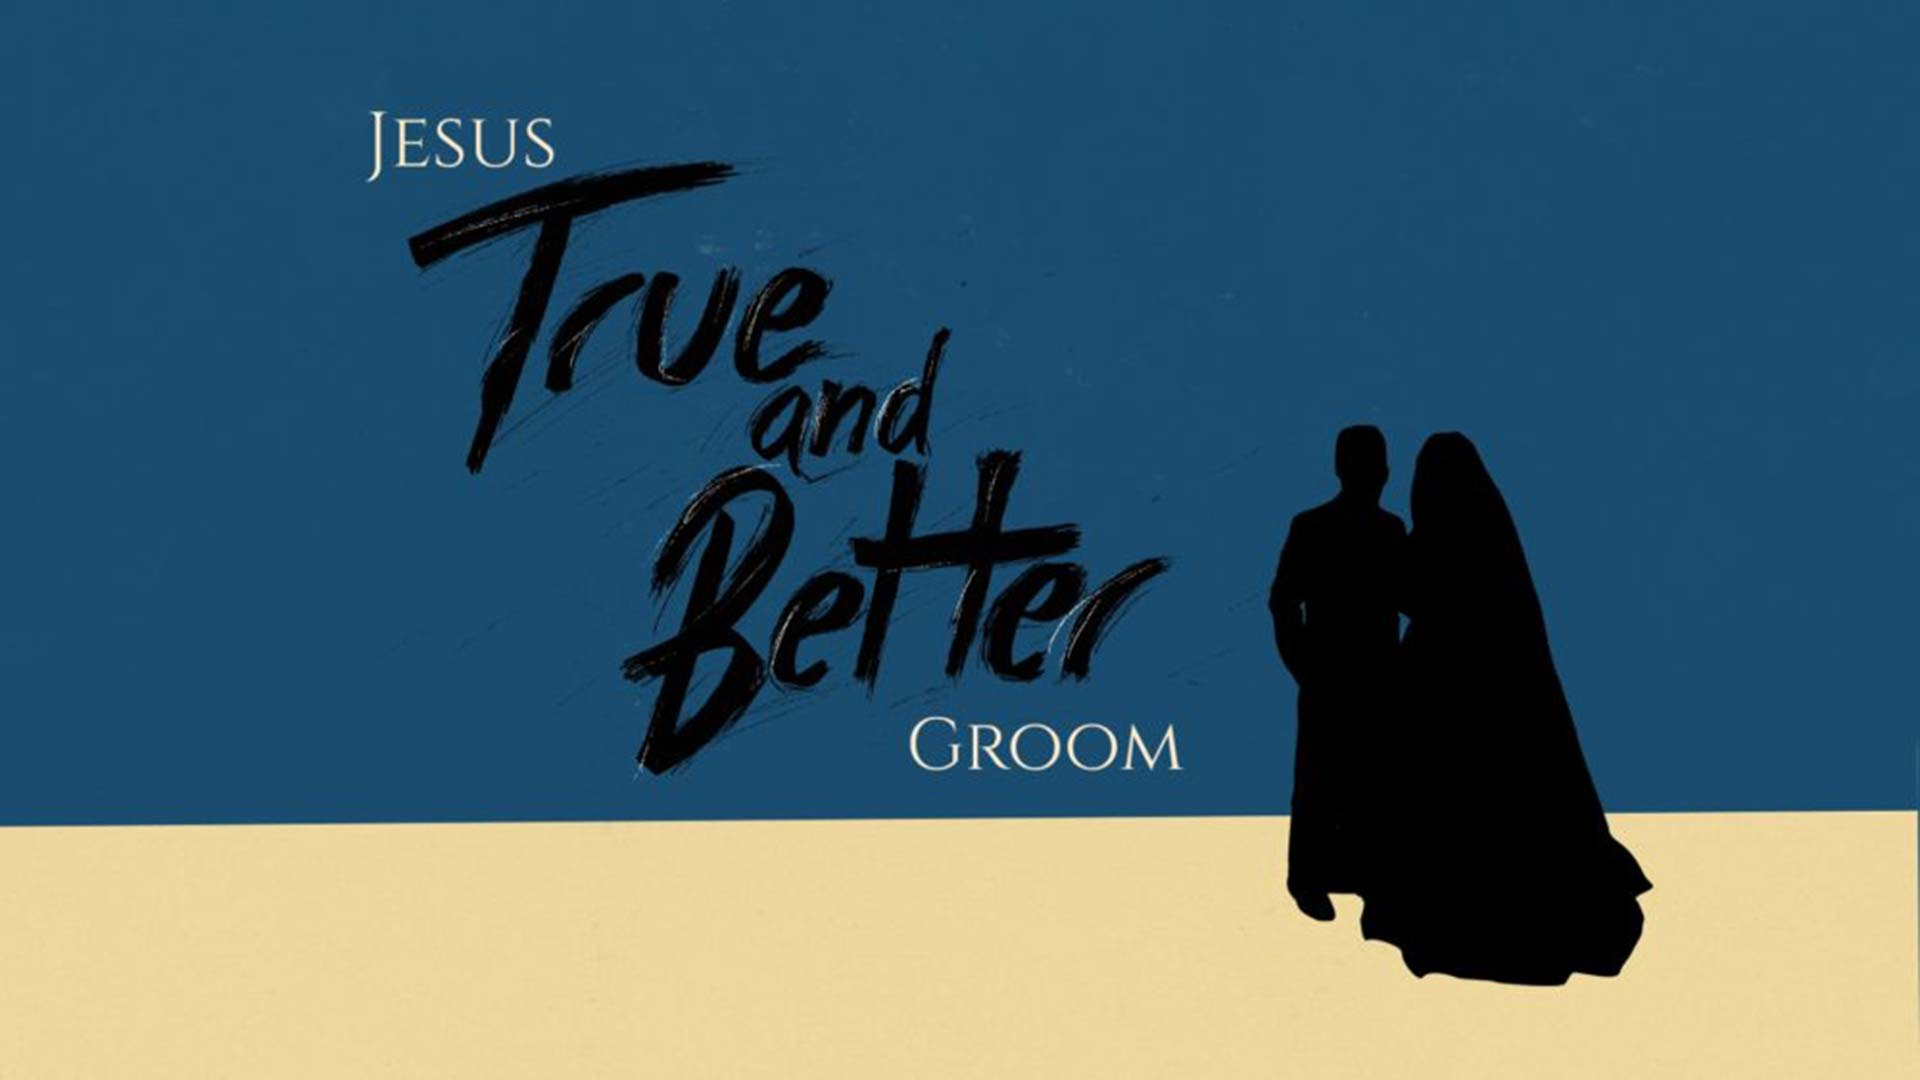 Jesus: True and Better Groom Image